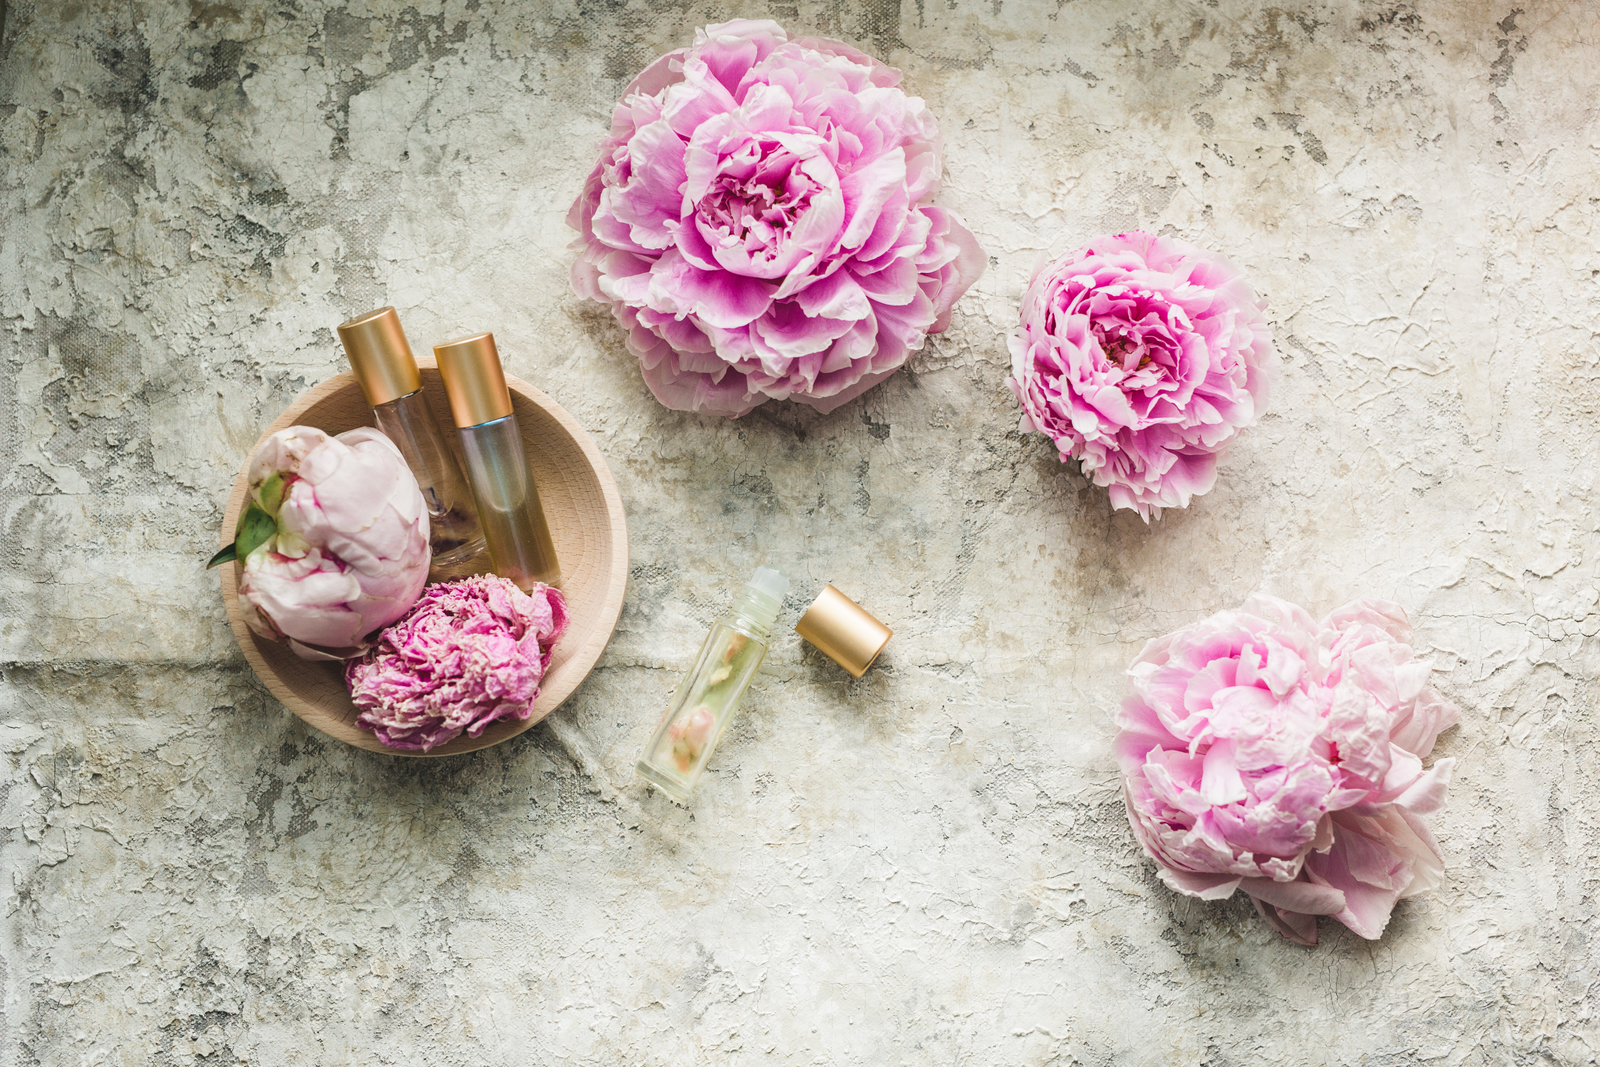 essential oils and pink flowers